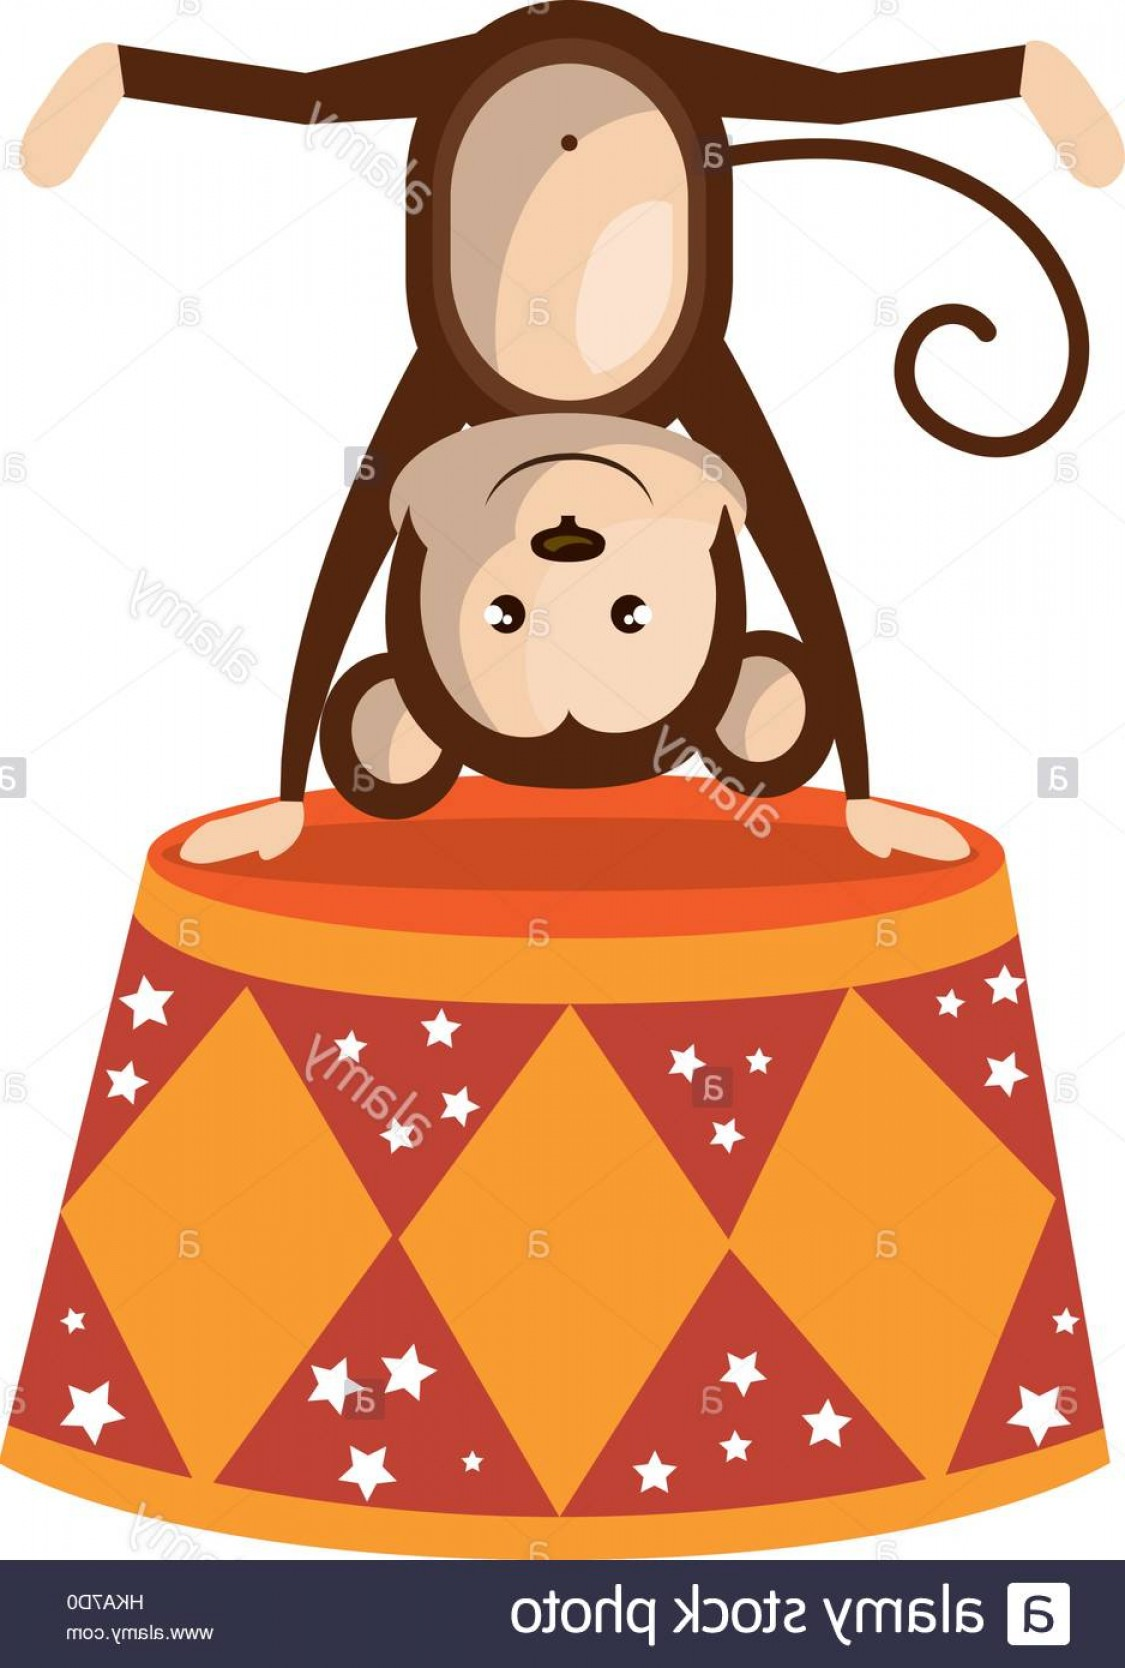 Circus Animals Vector Graphic: Stock Photo Cute Monkey Circus Animal Vector Illustration Design